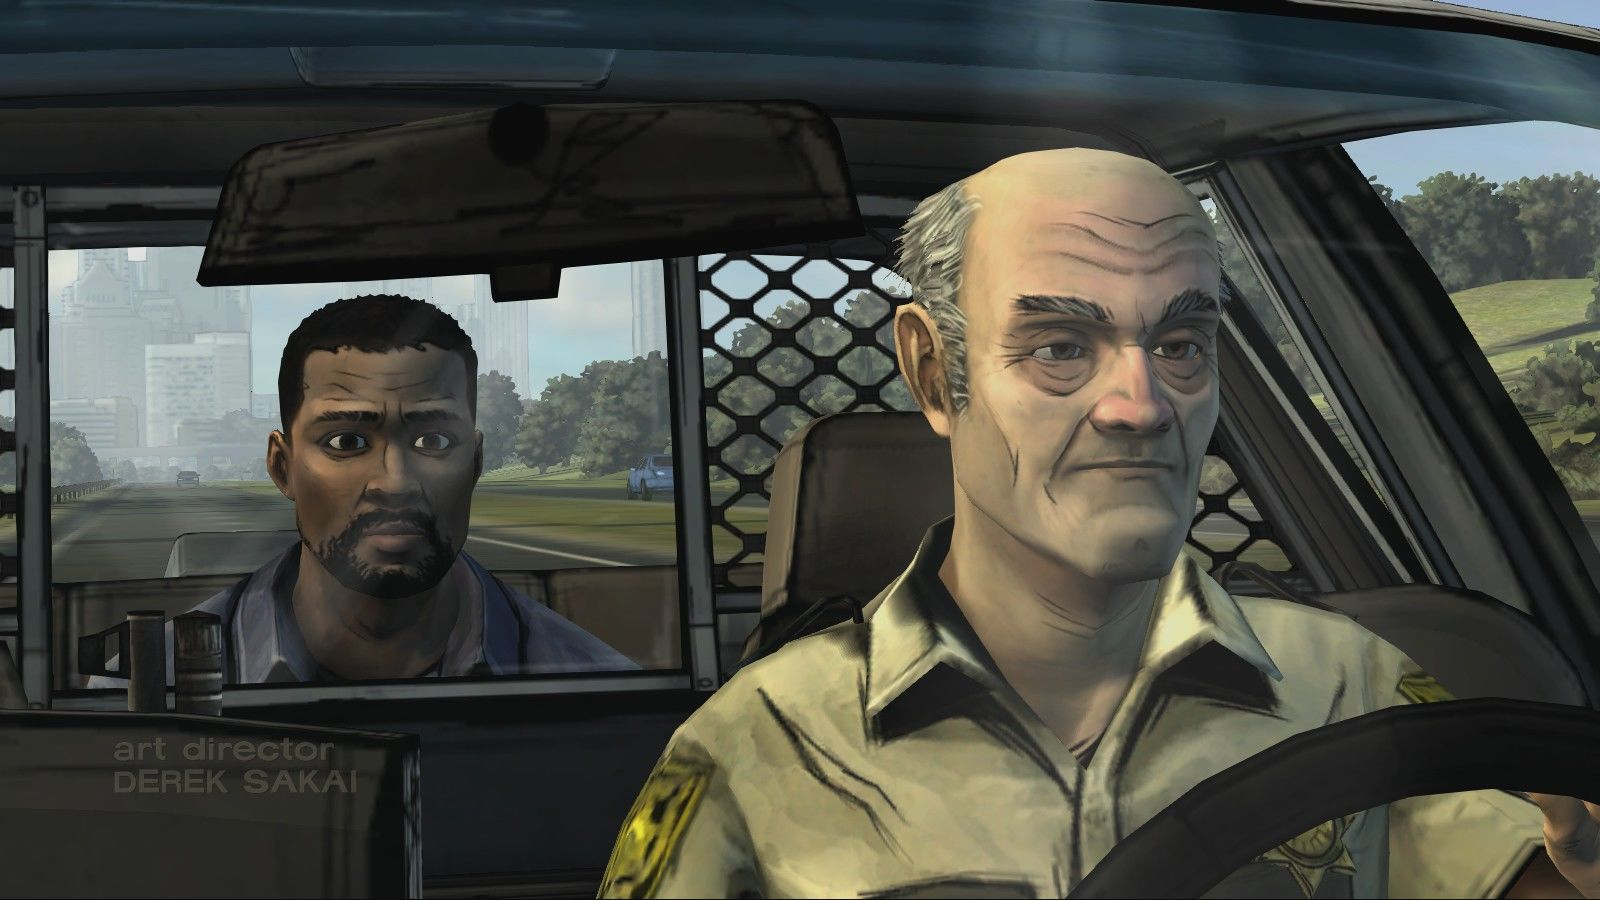 The Walking Dead Windows Episode 1 - Meet Lee Everett, a good man whose life took a bad turn. And the worse is yet to come...